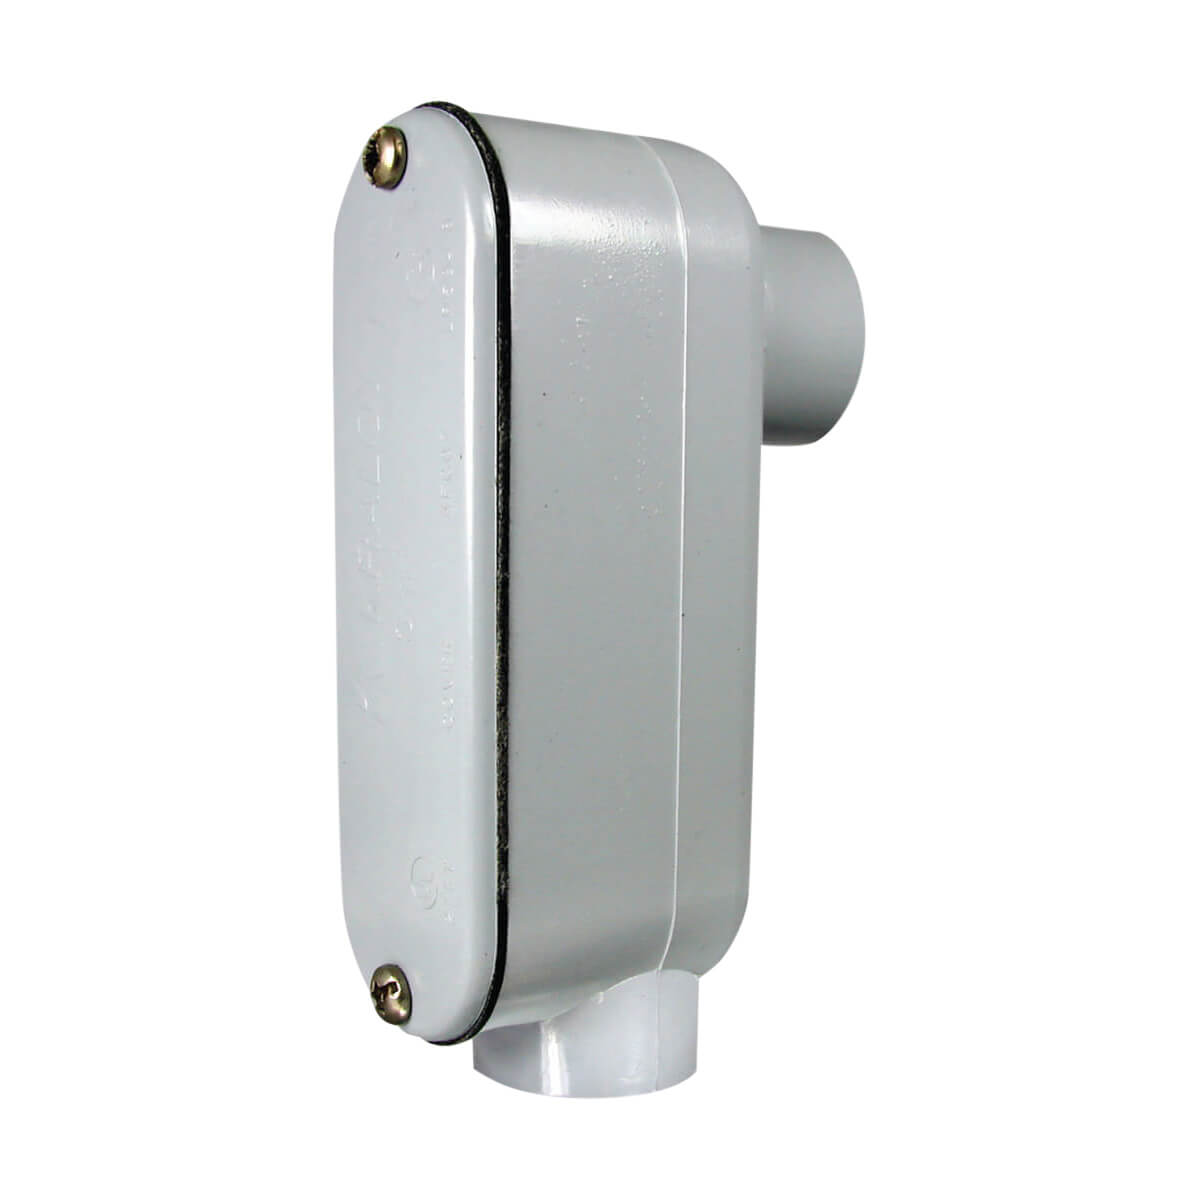 PVC Counduit Type LB Access Fitting - Hub - 1-1/4-in